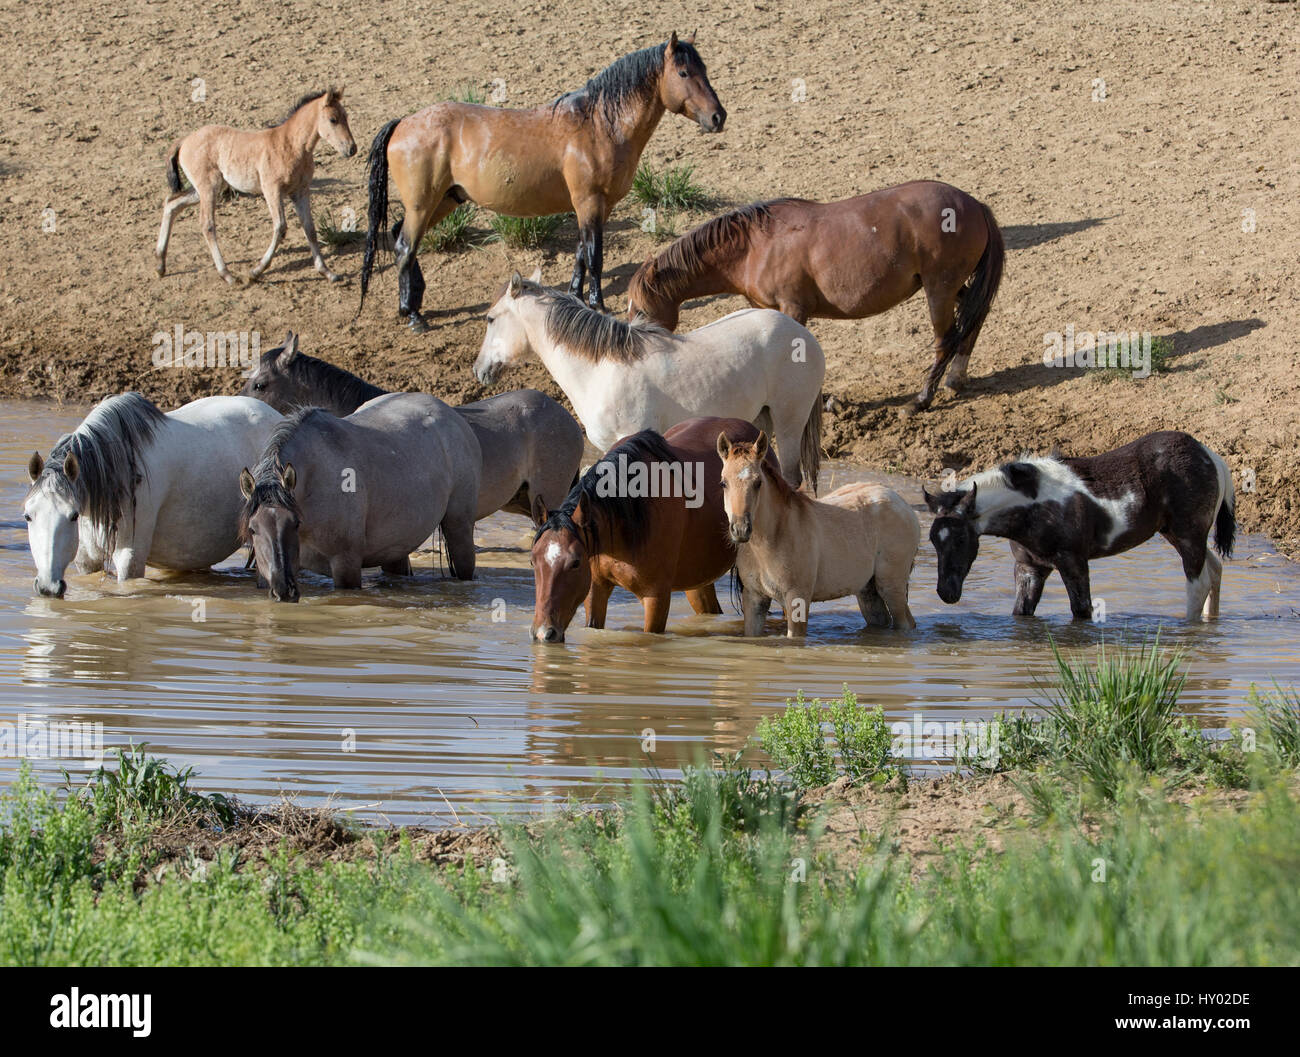 Wild Mustang stallion and family at waterhole in Sand Wash Basin, Colorado, USA. June. - Stock Image